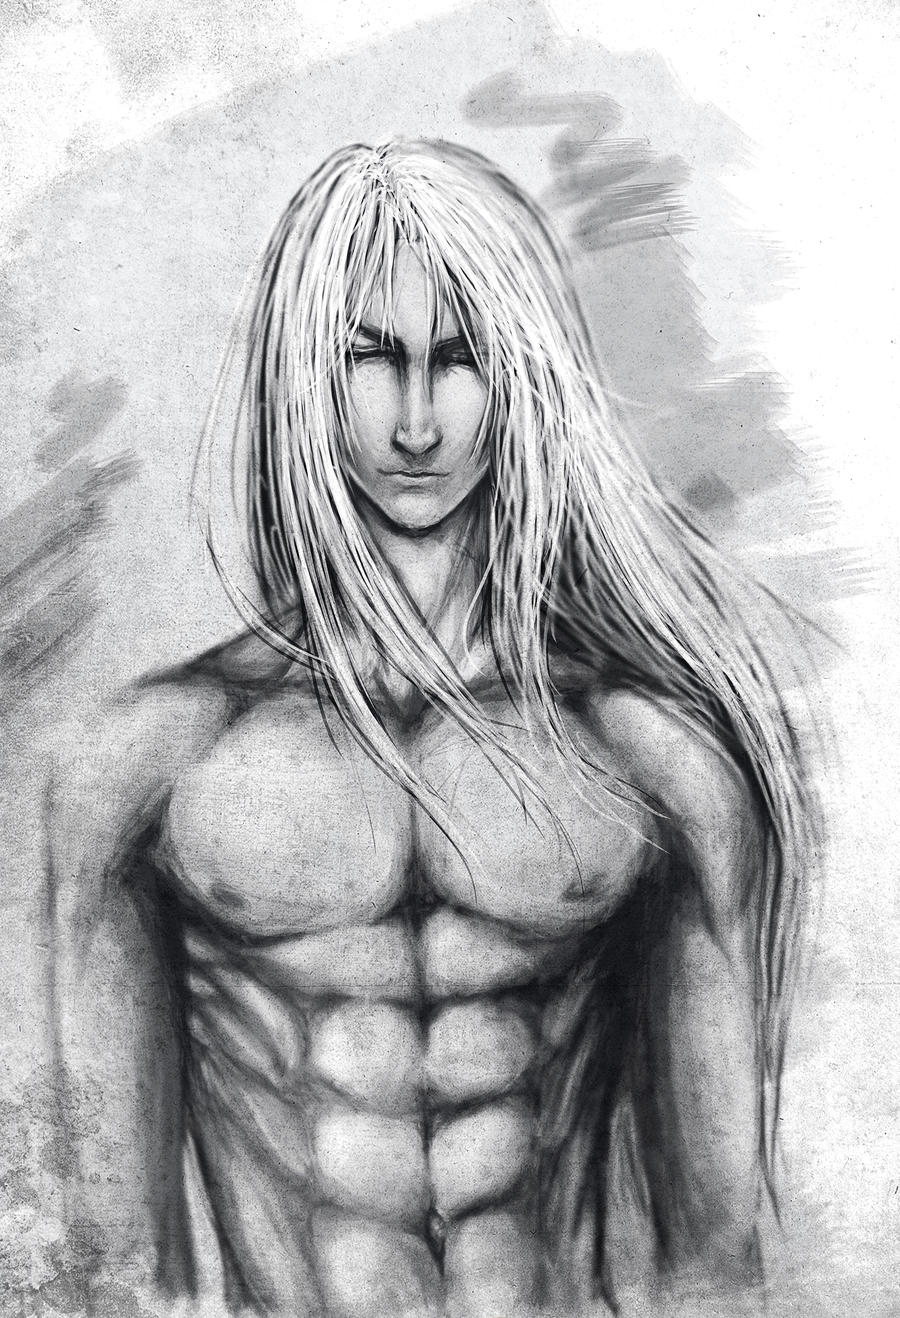 sephiroth by strangexreality